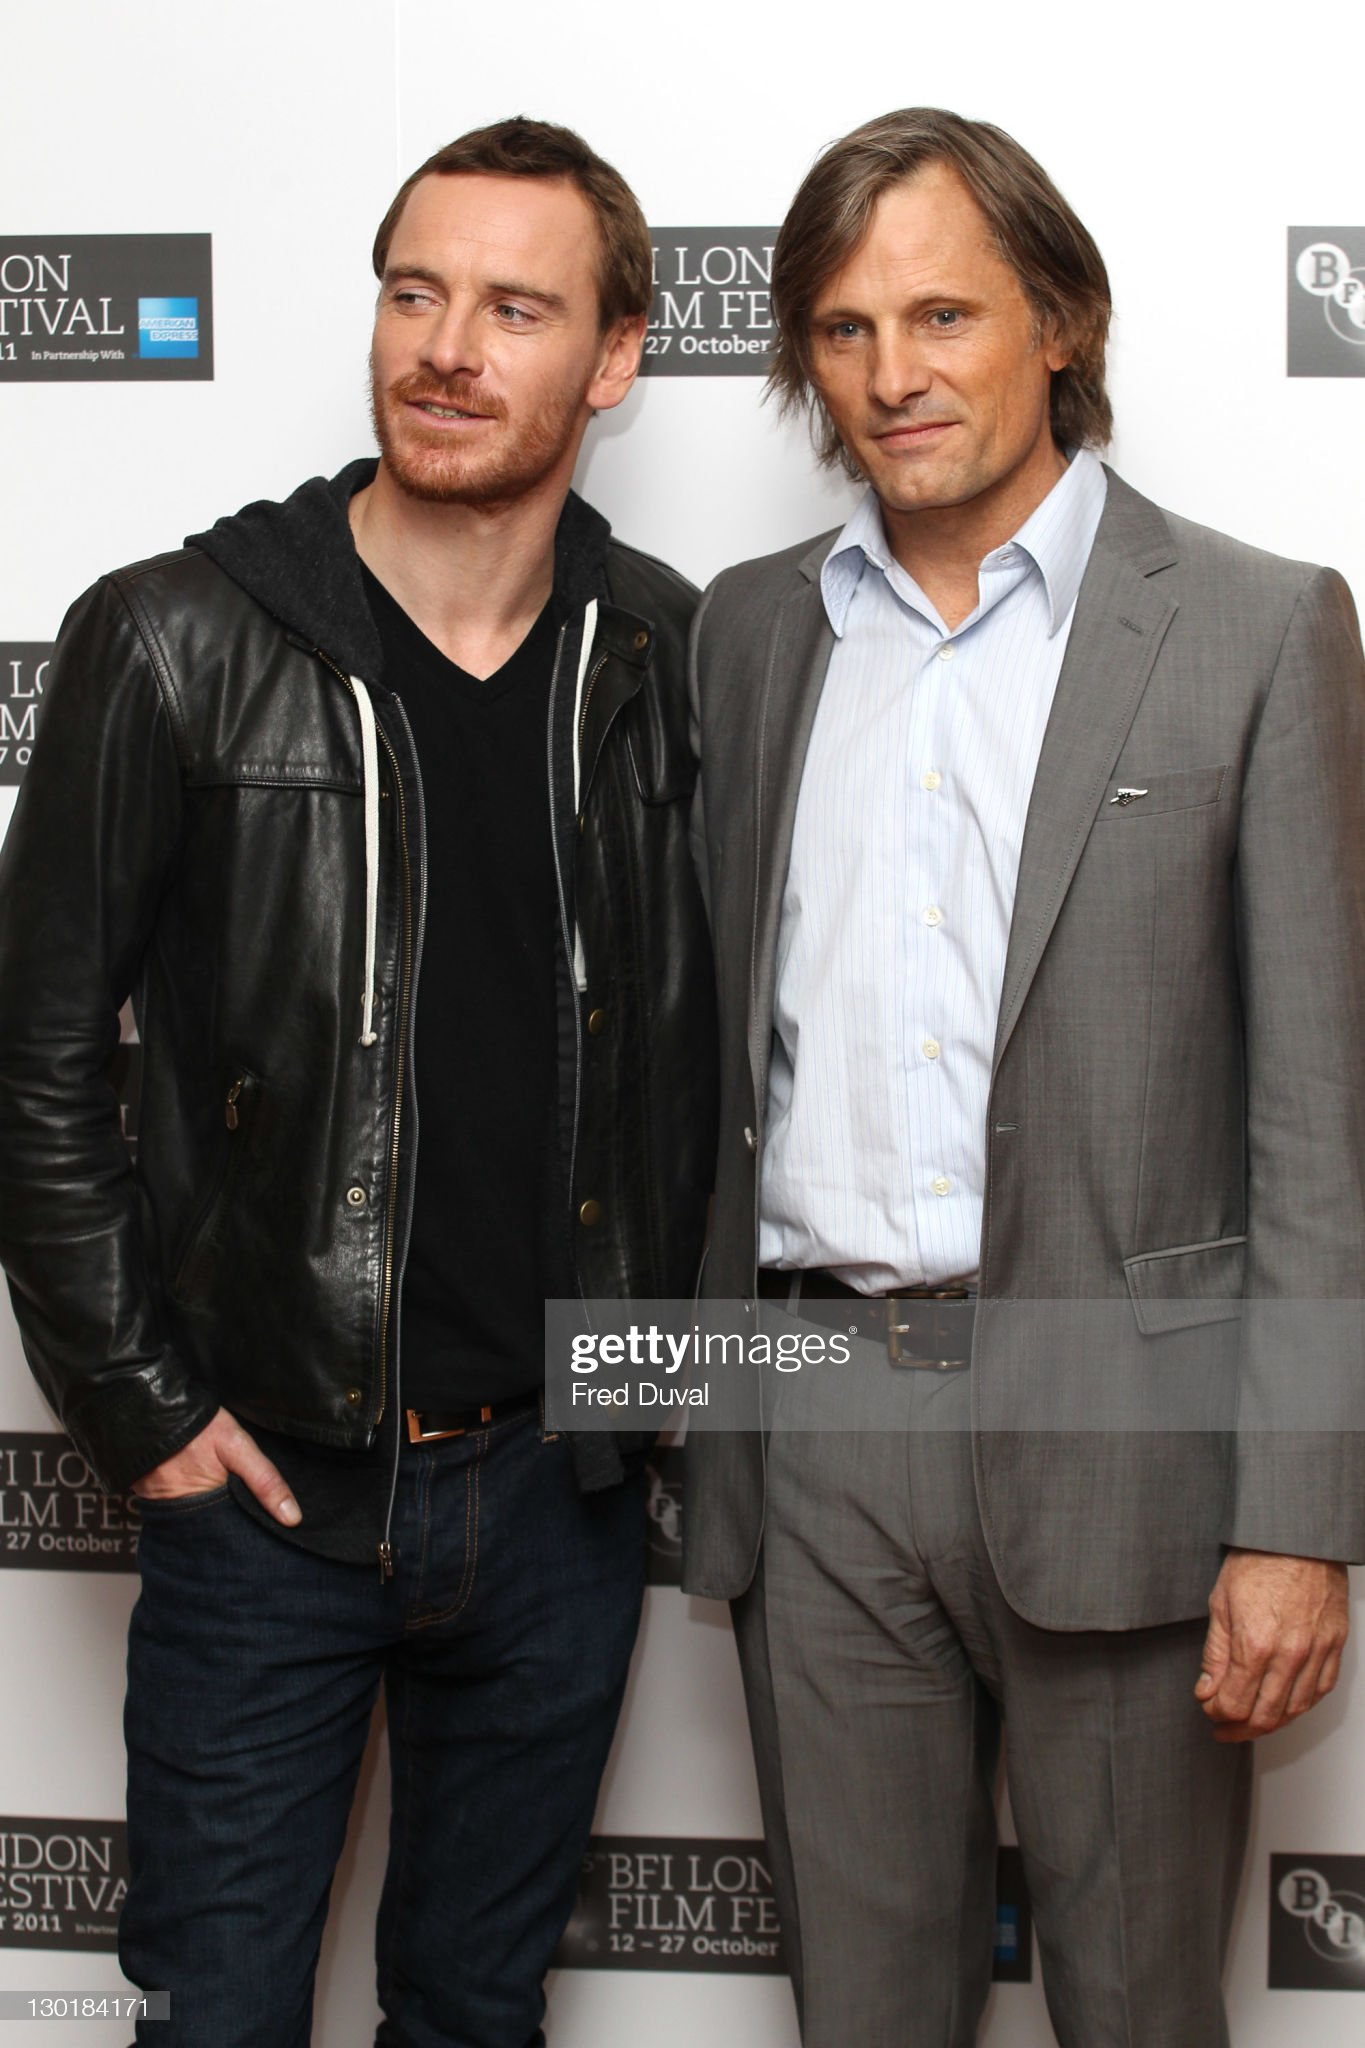 ¿Cuánto mide Michael Fassbender? - Real height Michael-fassbender-and-viggo-mortensen-attend-the-photocall-of-a-picture-id130184171?s=2048x2048